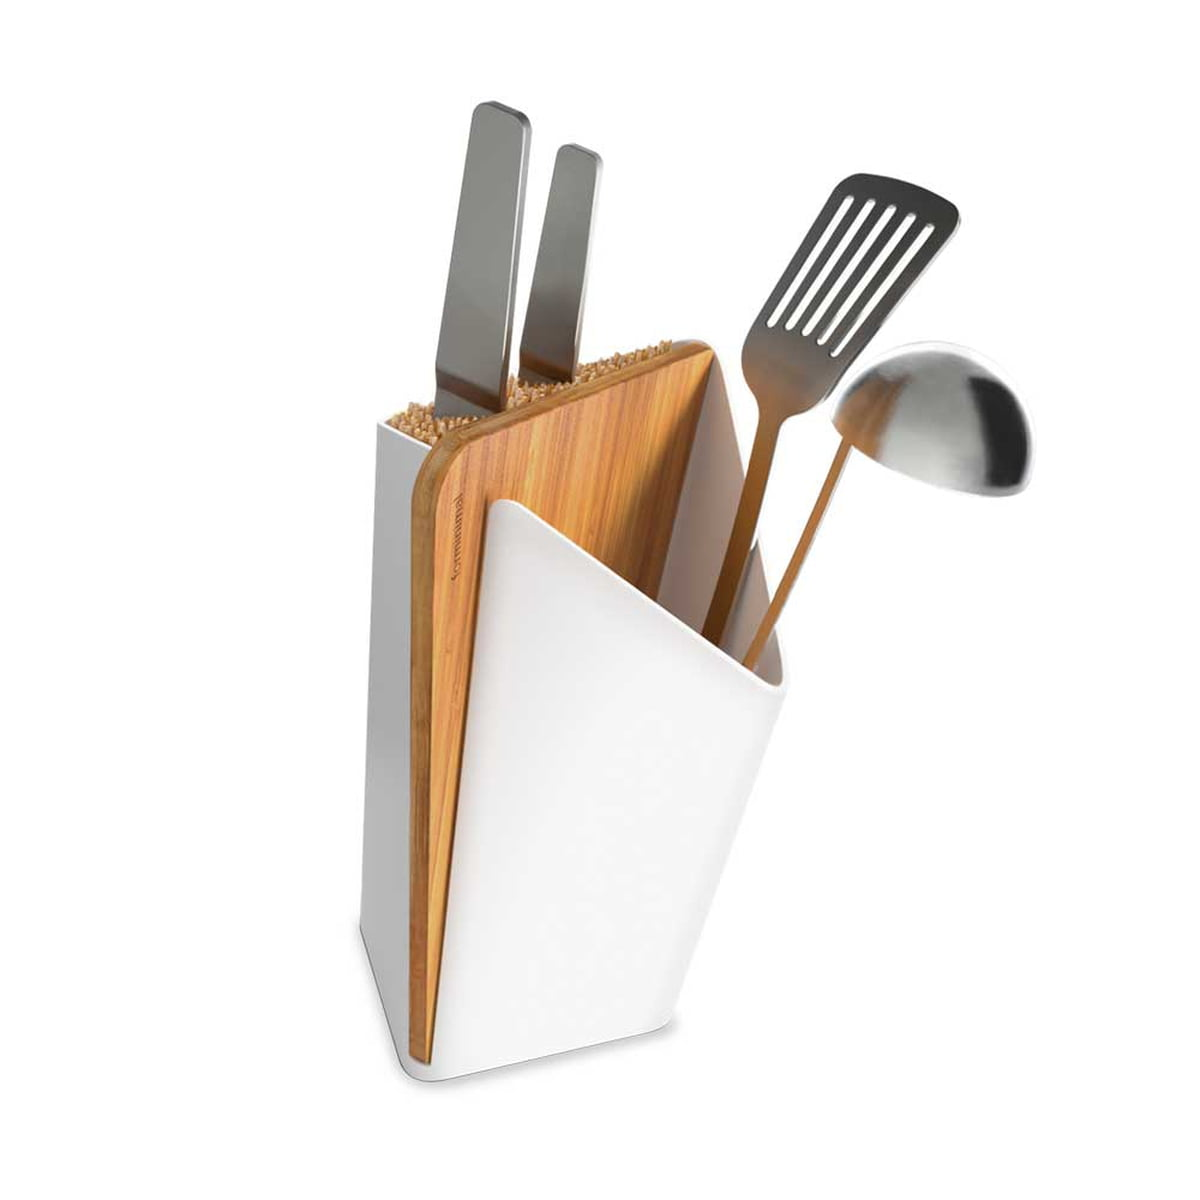 Knife holder with Board by Black + Blum